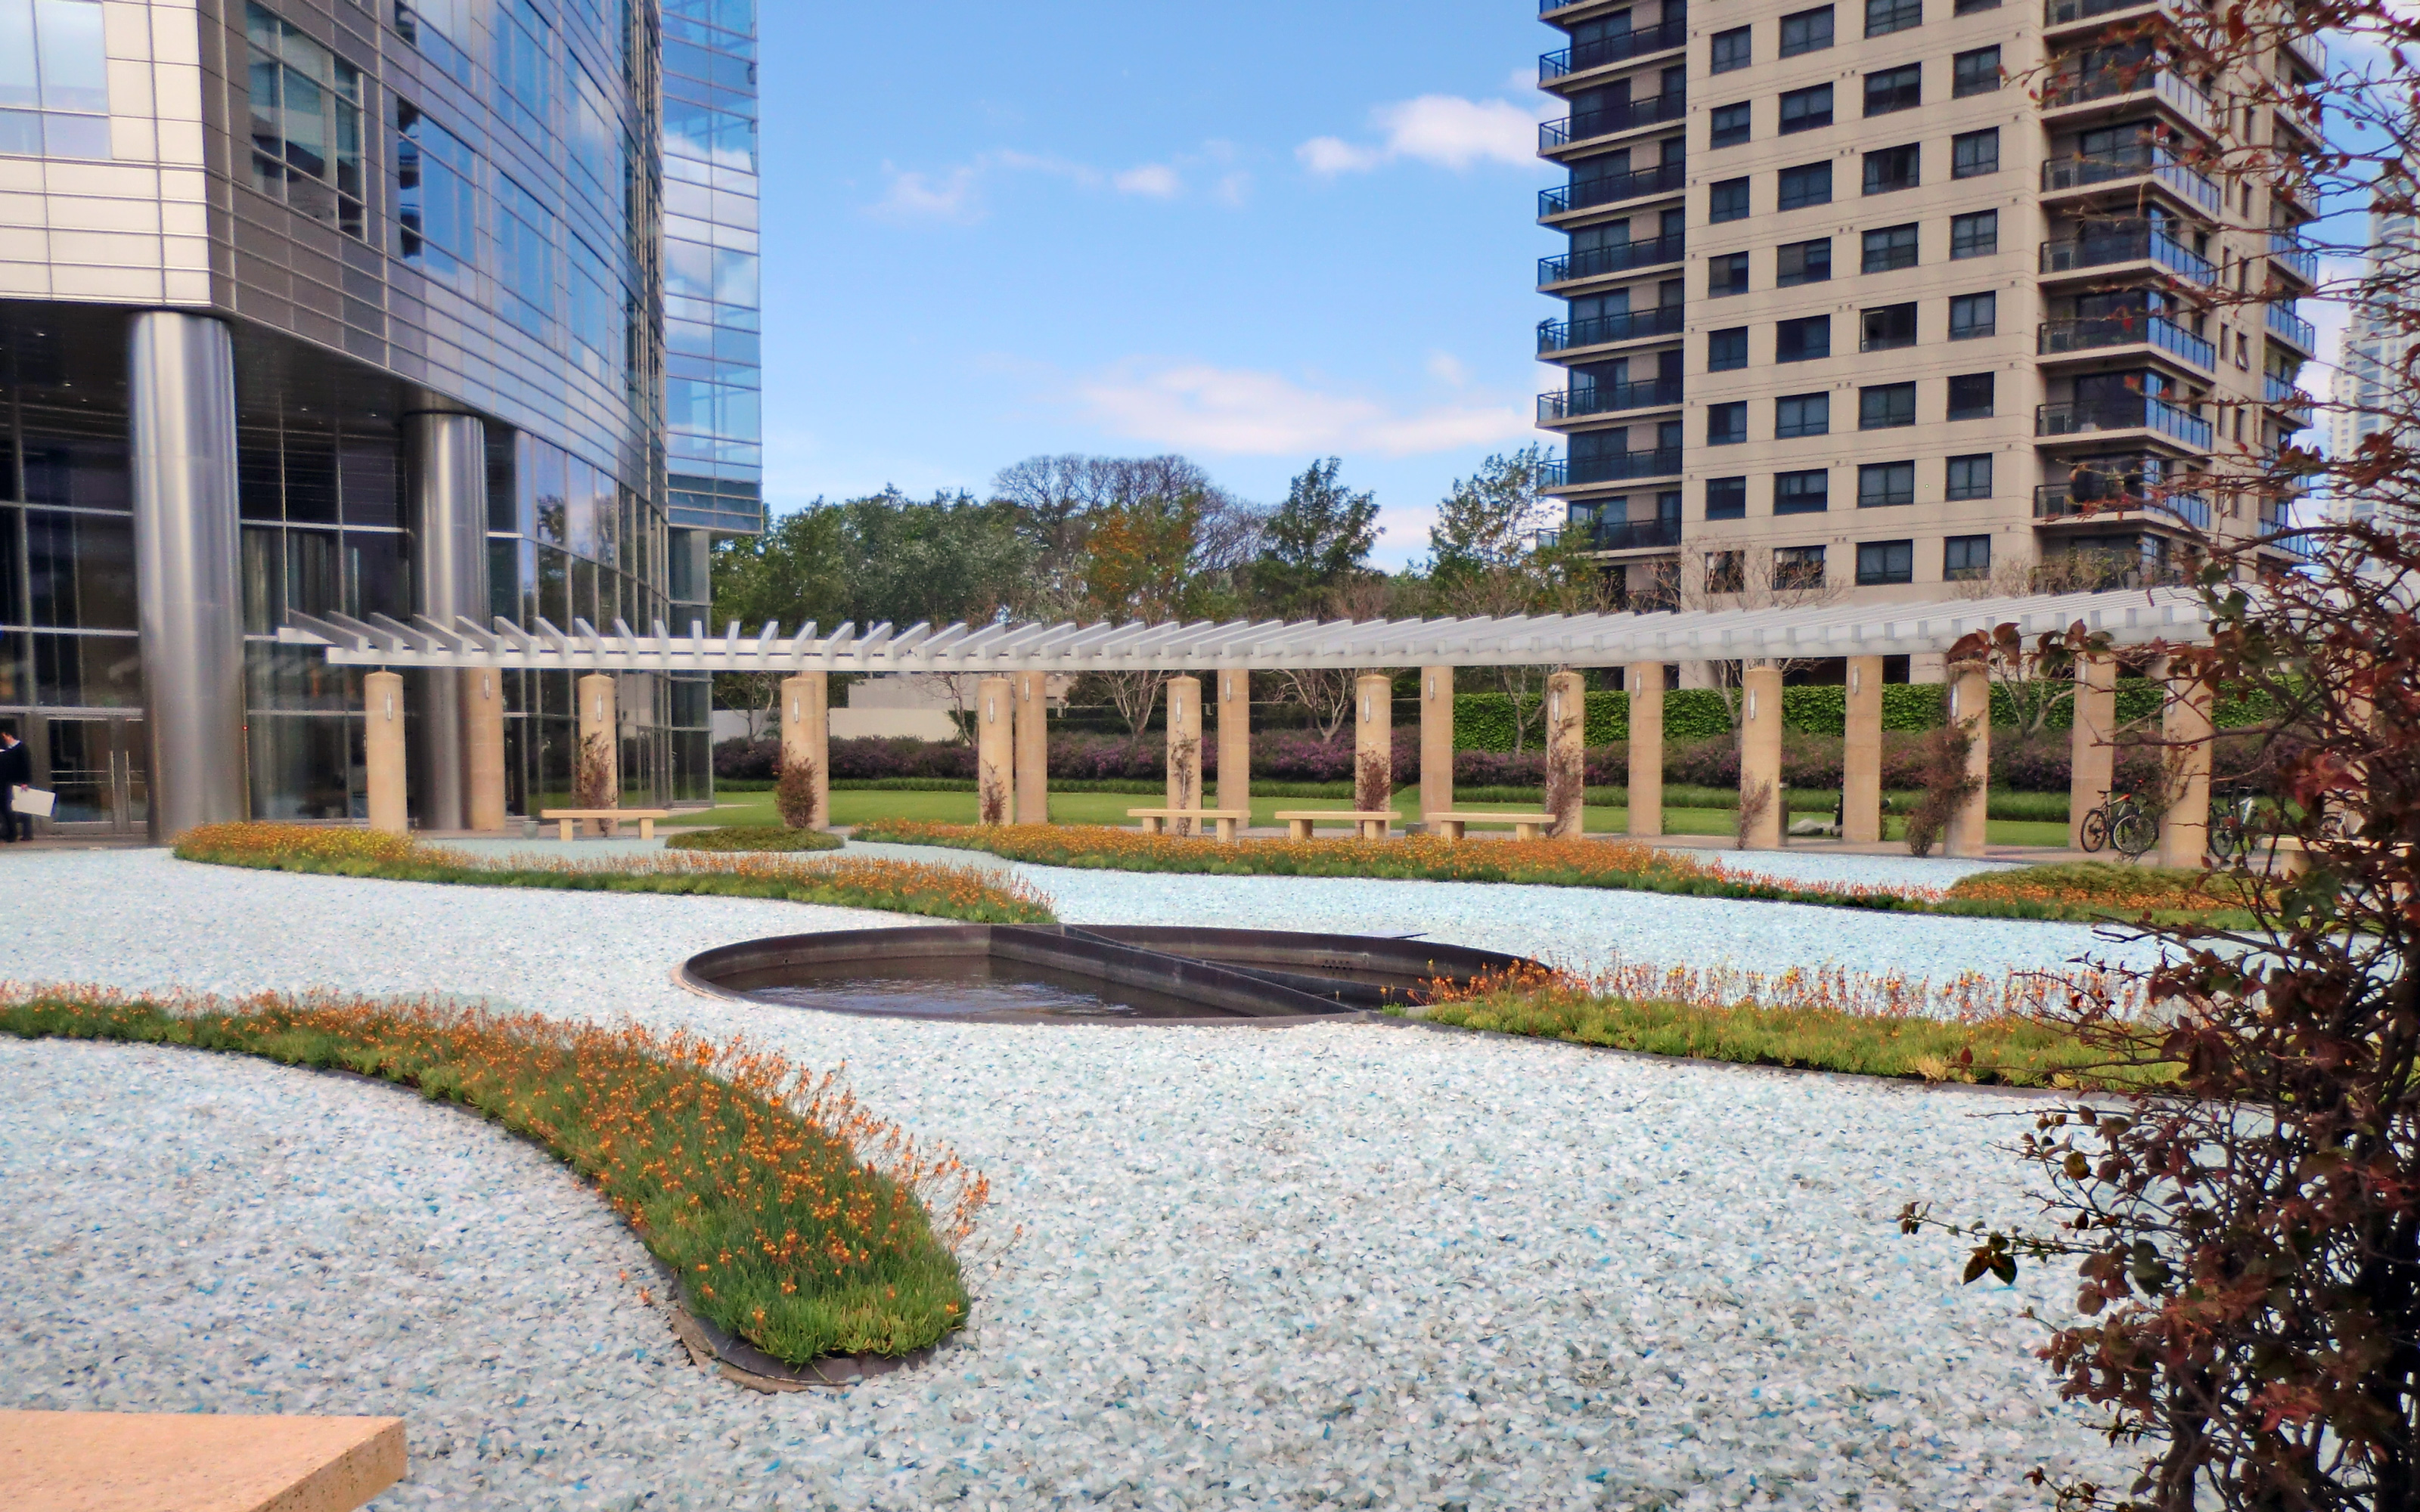 Roof garden with pillars, glass gravel paths and planted beds